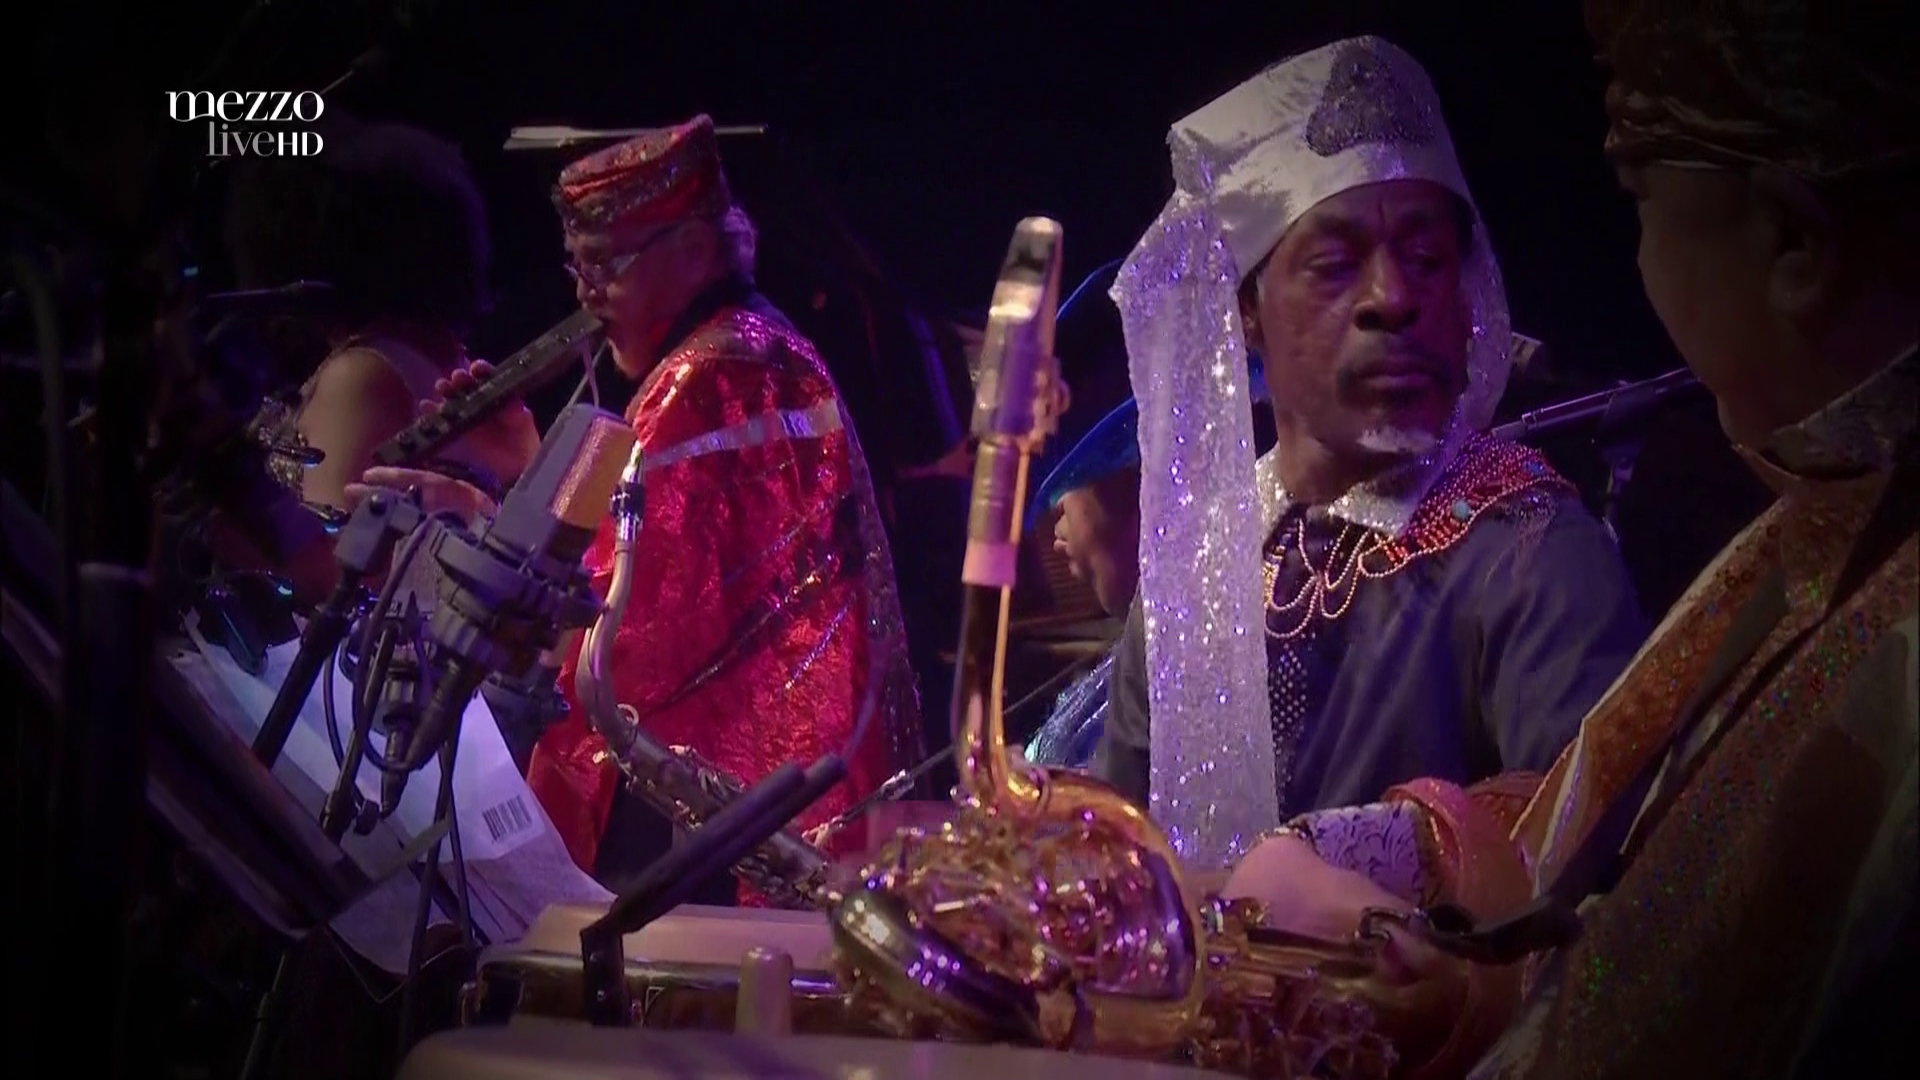 2015 Sun Ra - On Stage With Ra At Banlieues Bleues [HDTV 1080i] 4